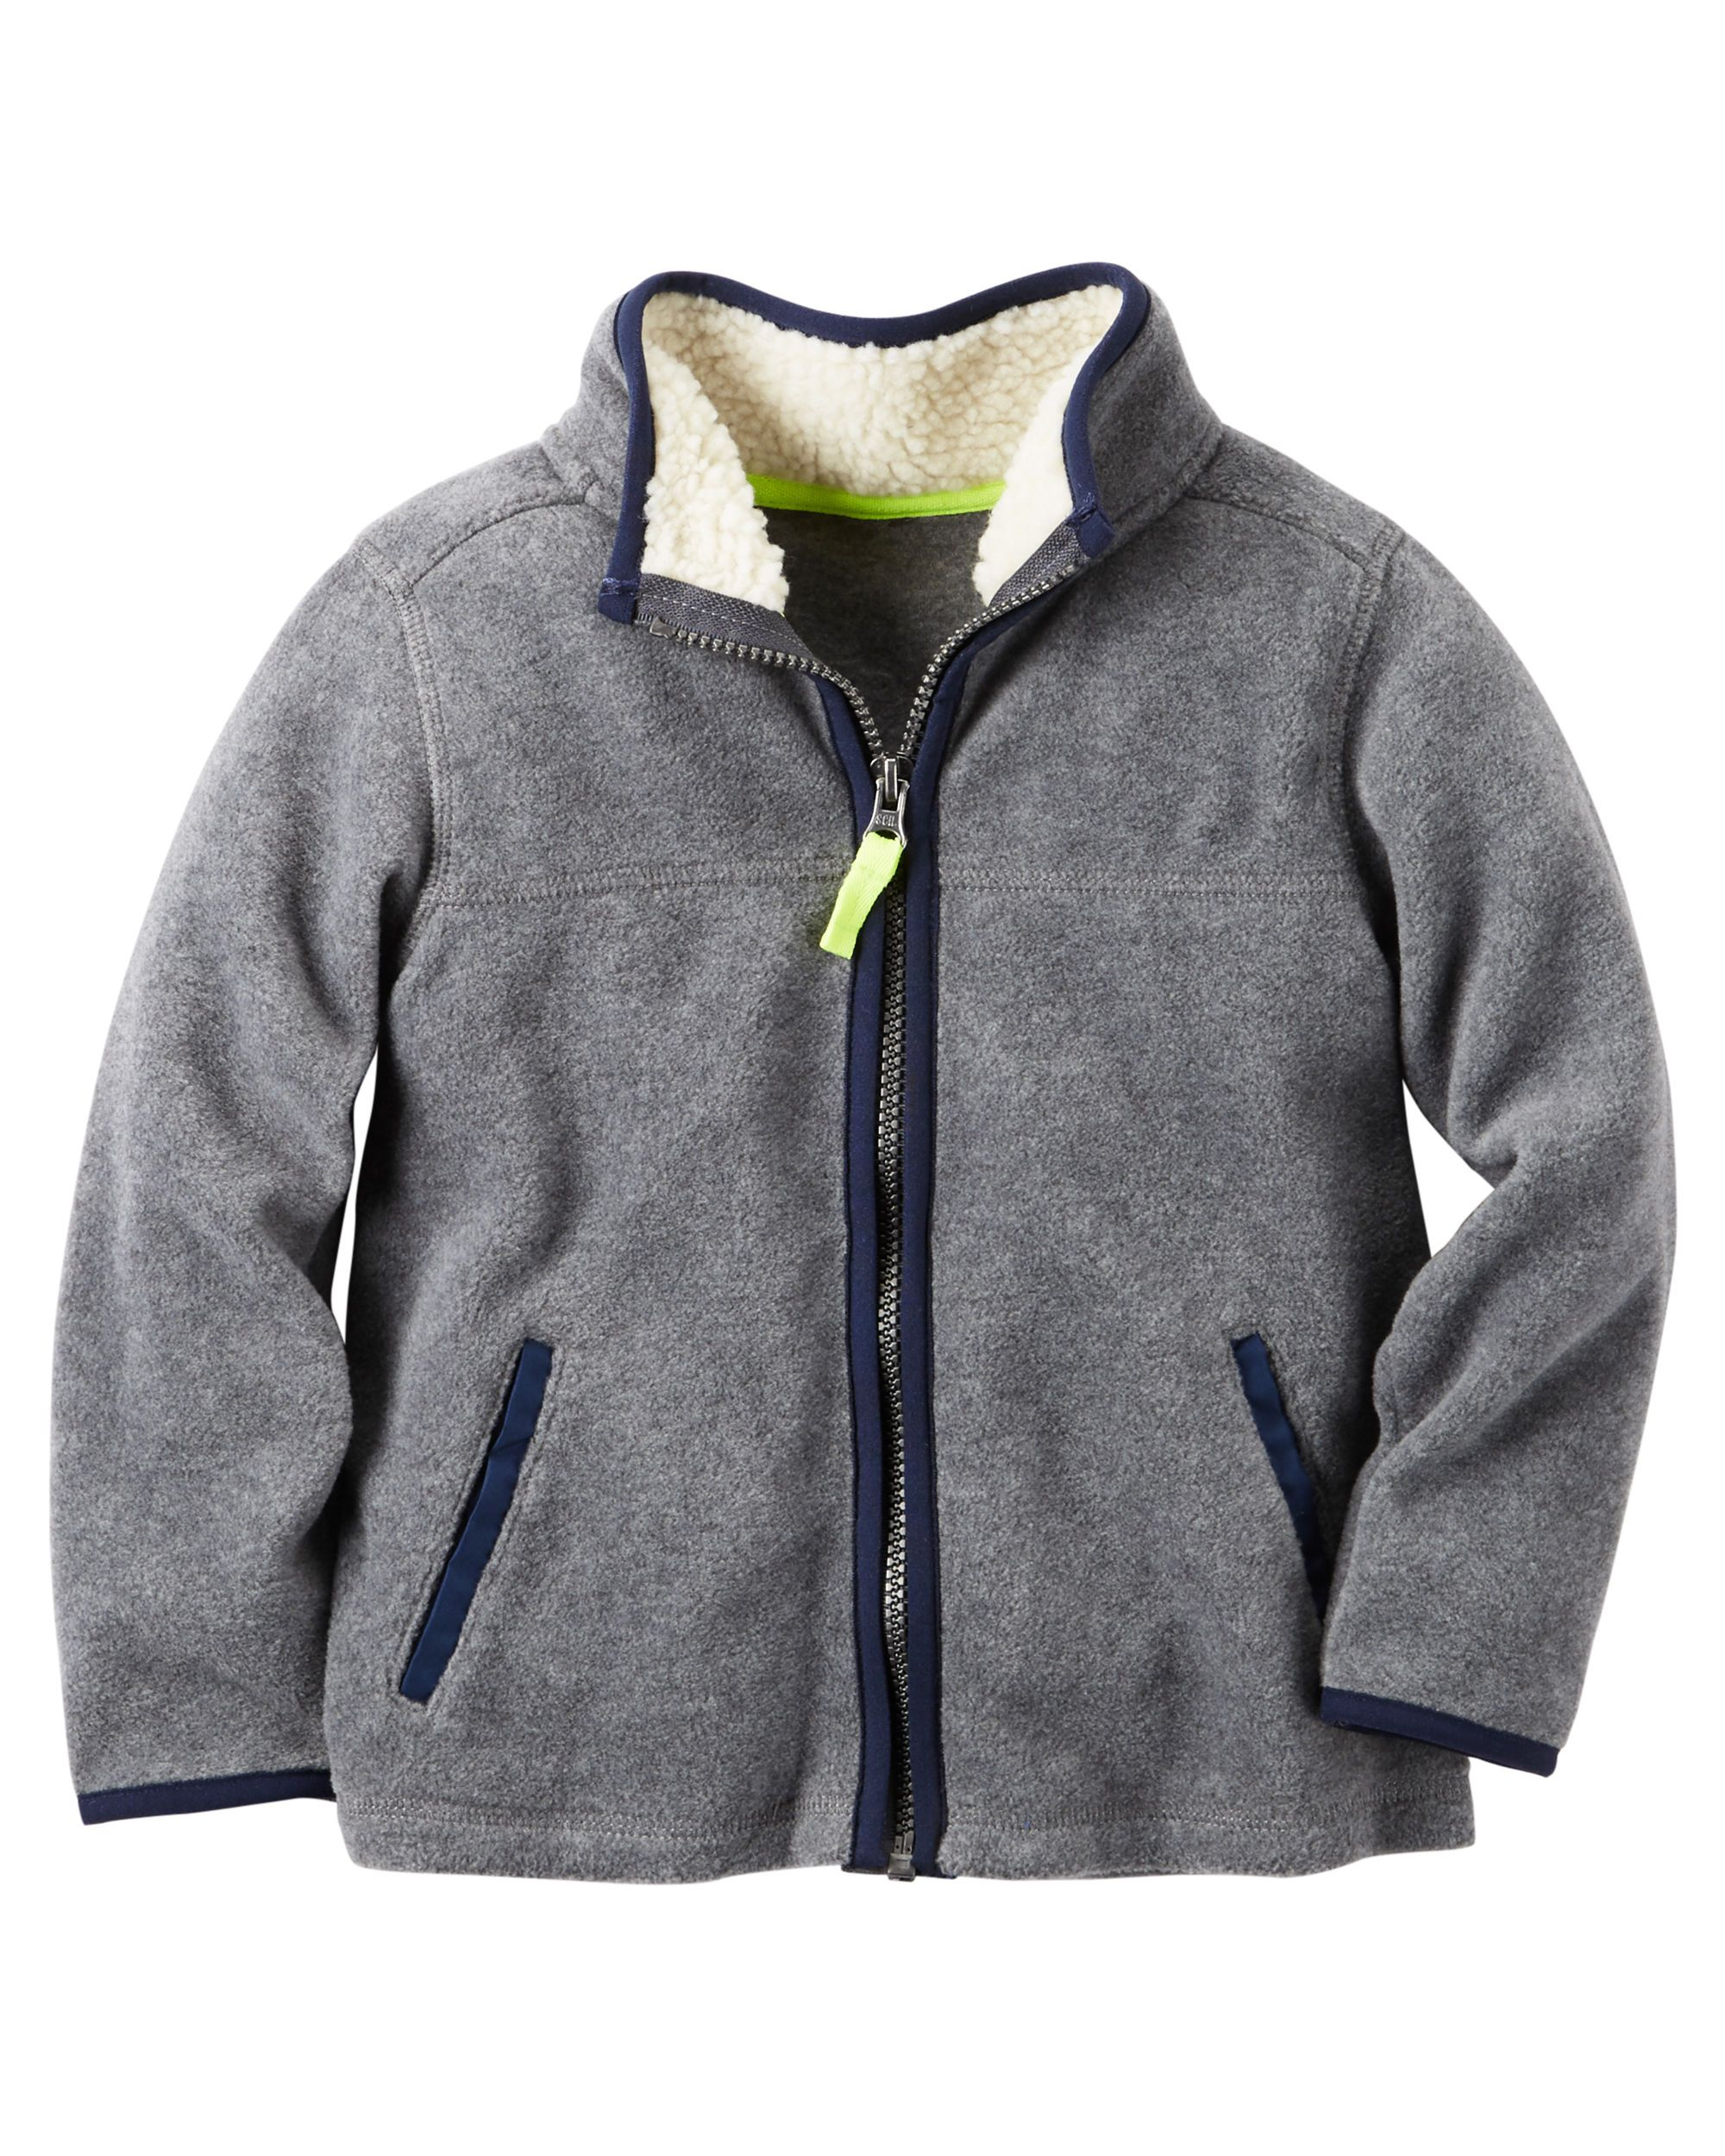 820d77827e86 Baby Boy Fleece Zip-Up Jacket